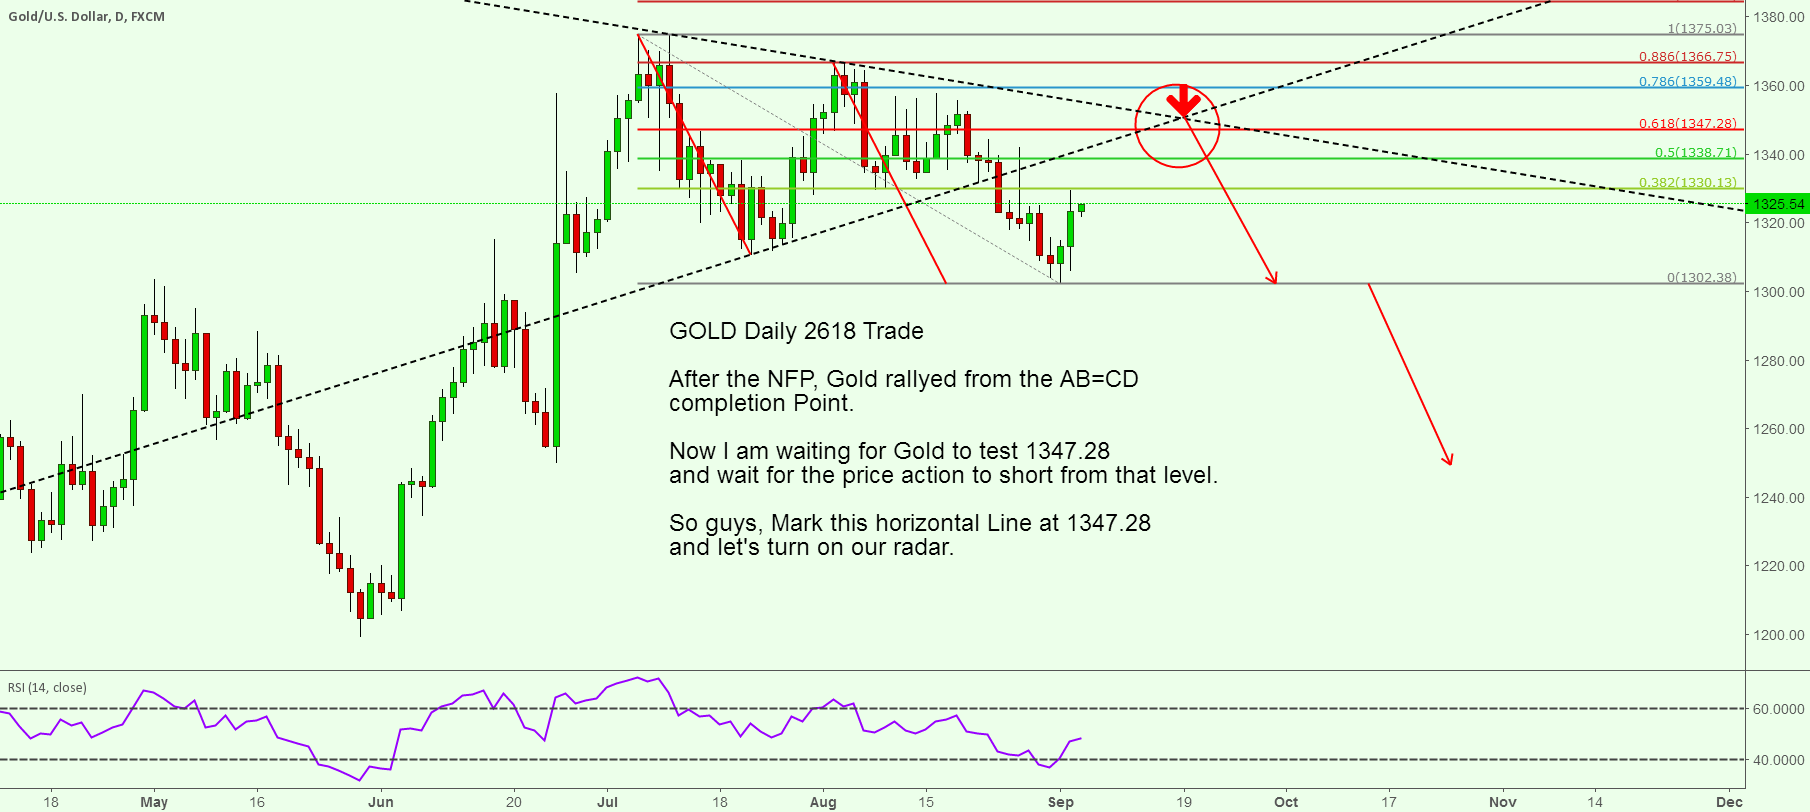 GOLD Daily 2618 Trade 20160905